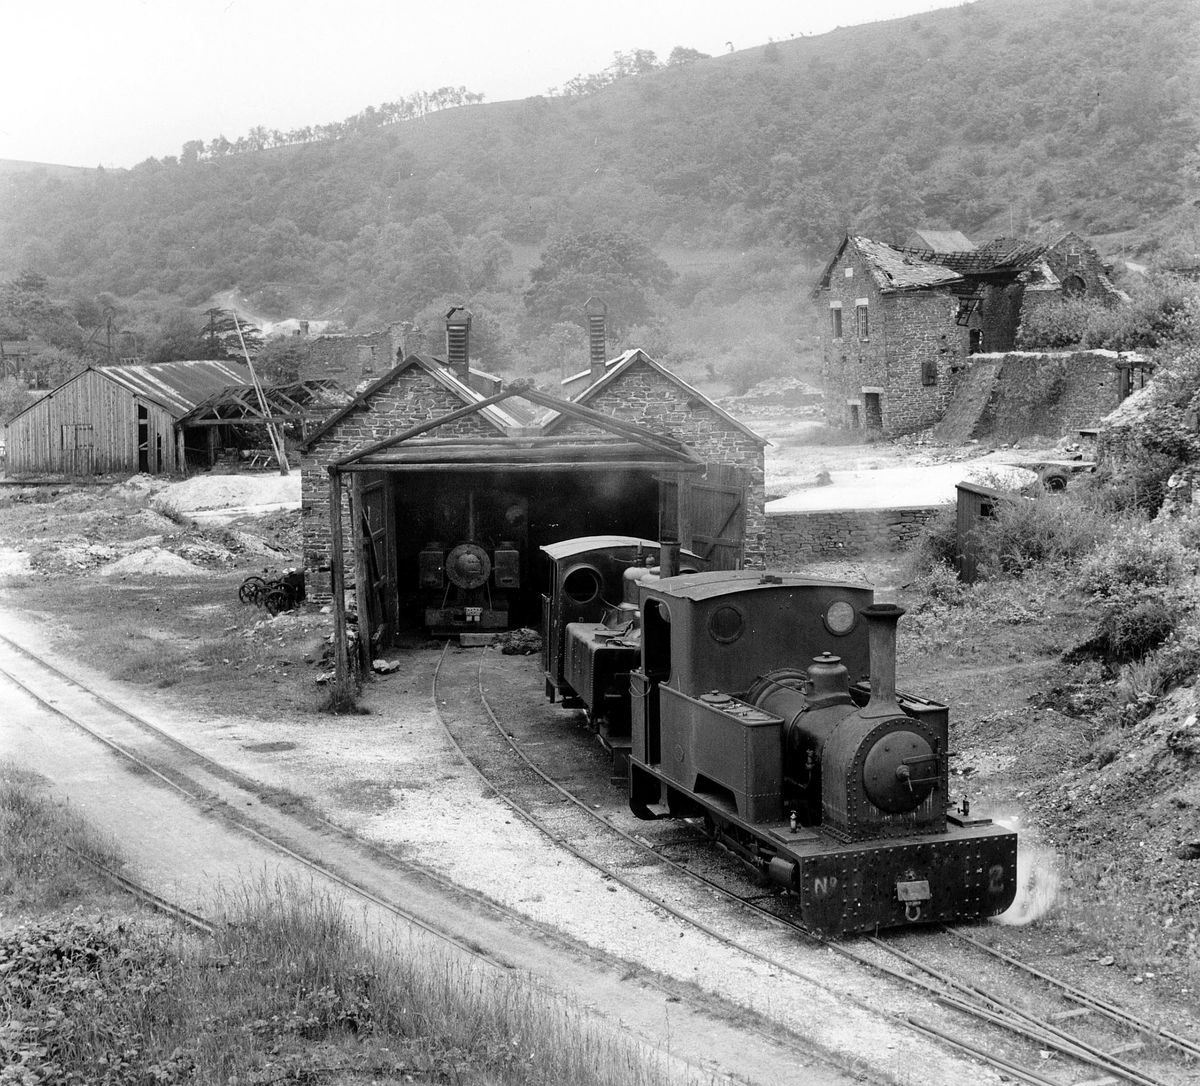 Dickie Preece obligingly hauls each Baldwin locomotive in turn out of the shed for a photo parade on June 11, 1943. In the left background are dressing floor sheds, while to the right is the crusher house.